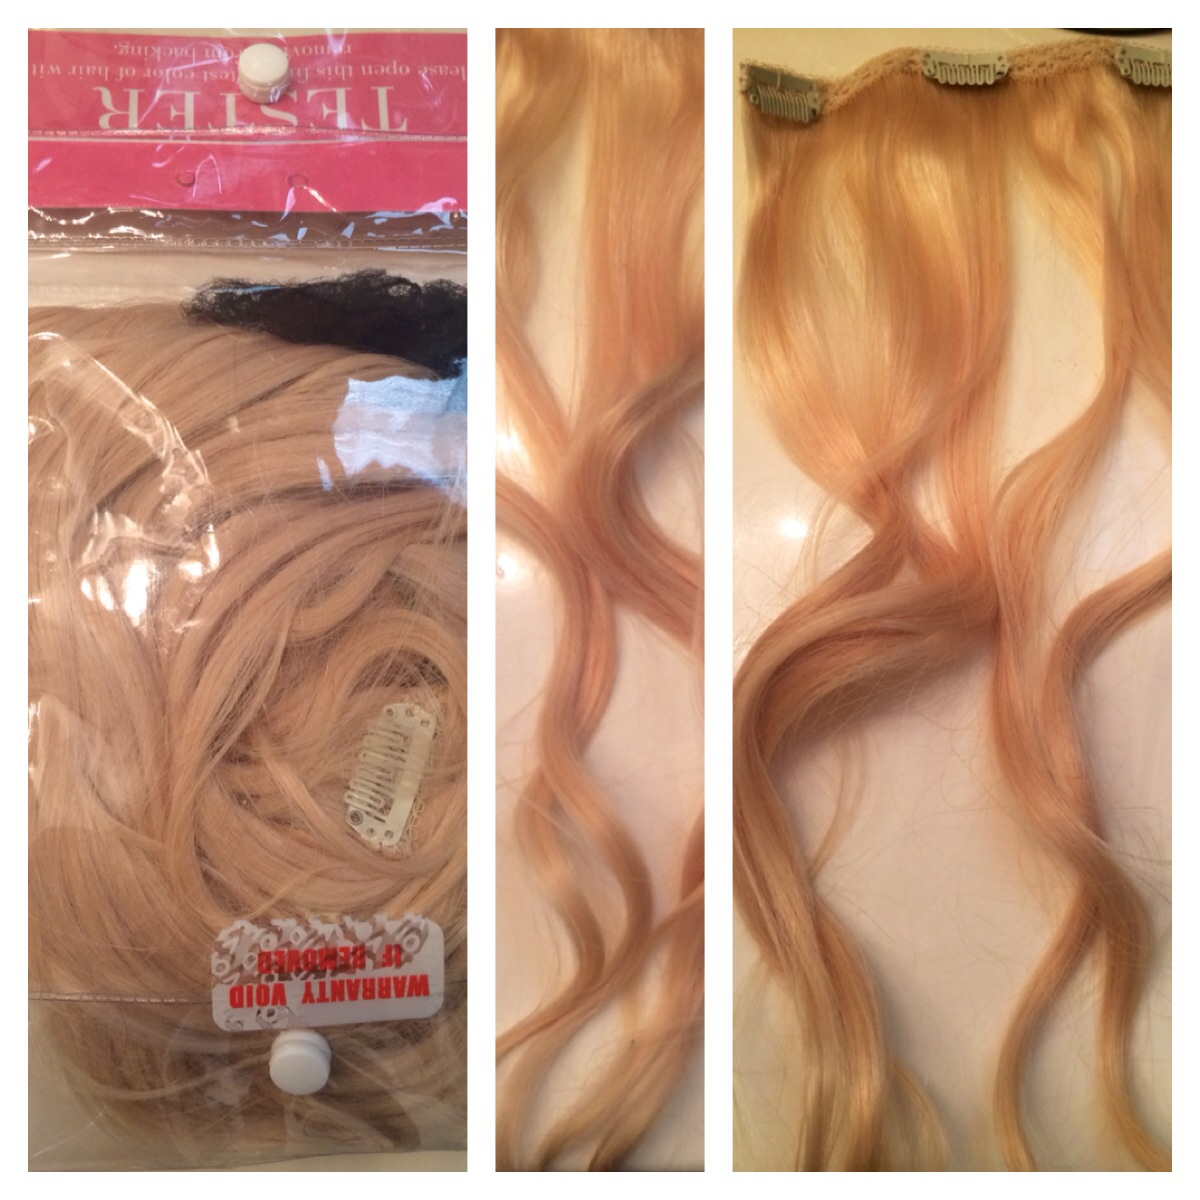 Bellami hair extensions jfk days mine is obviously open but they typically come in a hair net type thing for protection they also come straight mine are just pmusecretfo Choice Image